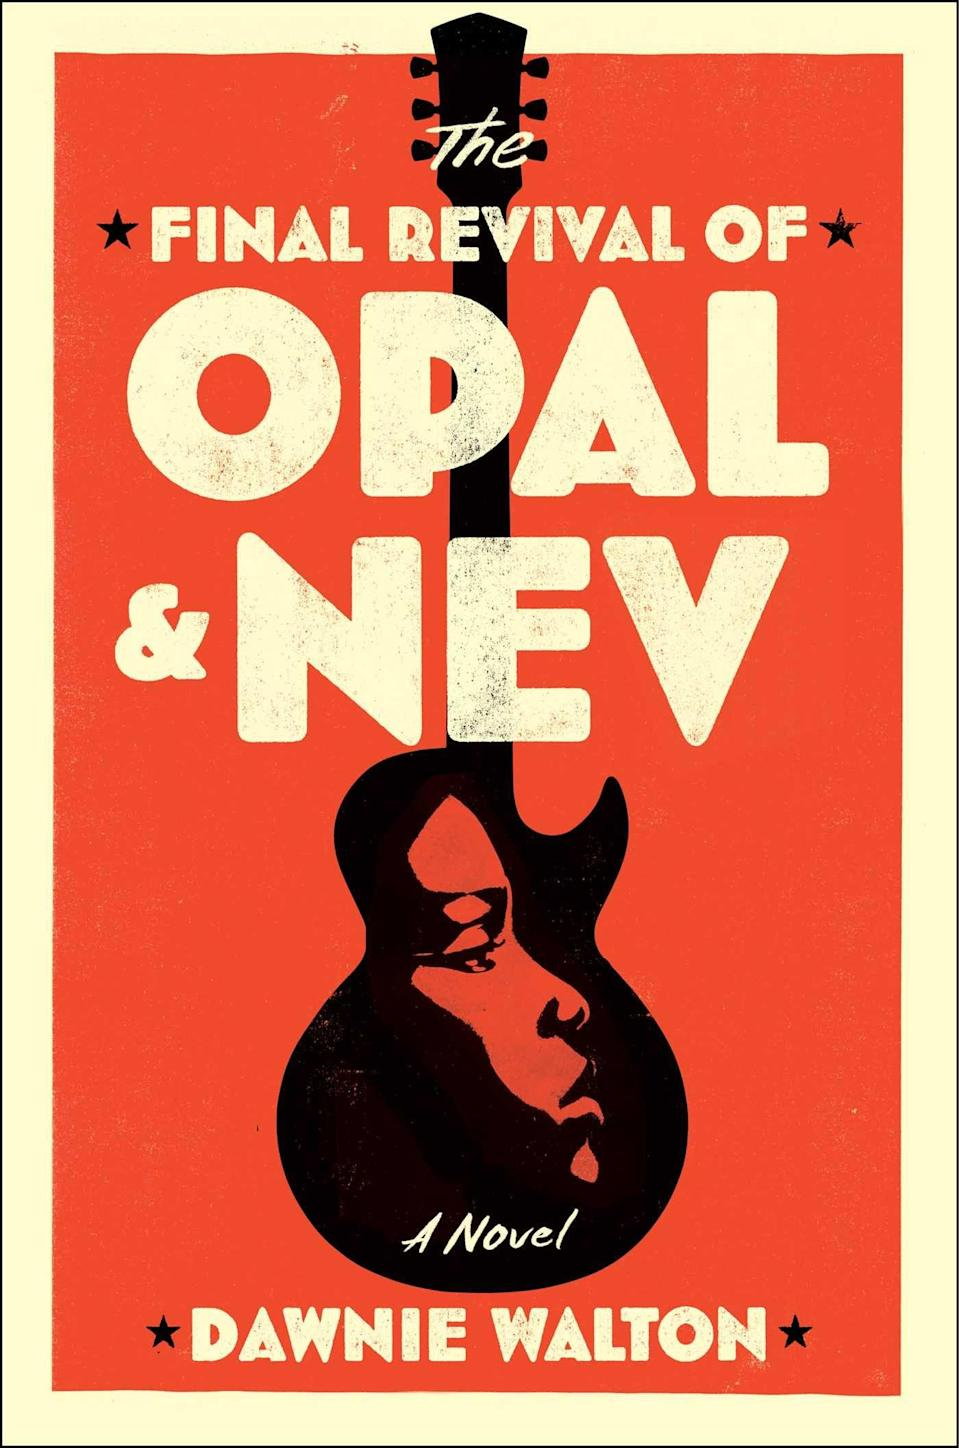 <p>Dawnie Walton's <span><strong>The Final Revival of Opal & Nev</strong></span> tells the story of a fictional rock-and-roll duo who rise to fame in the '70s. However, when a rival band uses a Confederate flag to promote their music, Opal's protest costs her her career. Decades later, journalist S. Sunny Shelton sets out to chronicle the duo's rise and fall, and their potential reunion, but when disturbing allegations come to light, she realizes there is more to Opal's story than anyone knows. </p> <p><em>Out April 20</em></p>